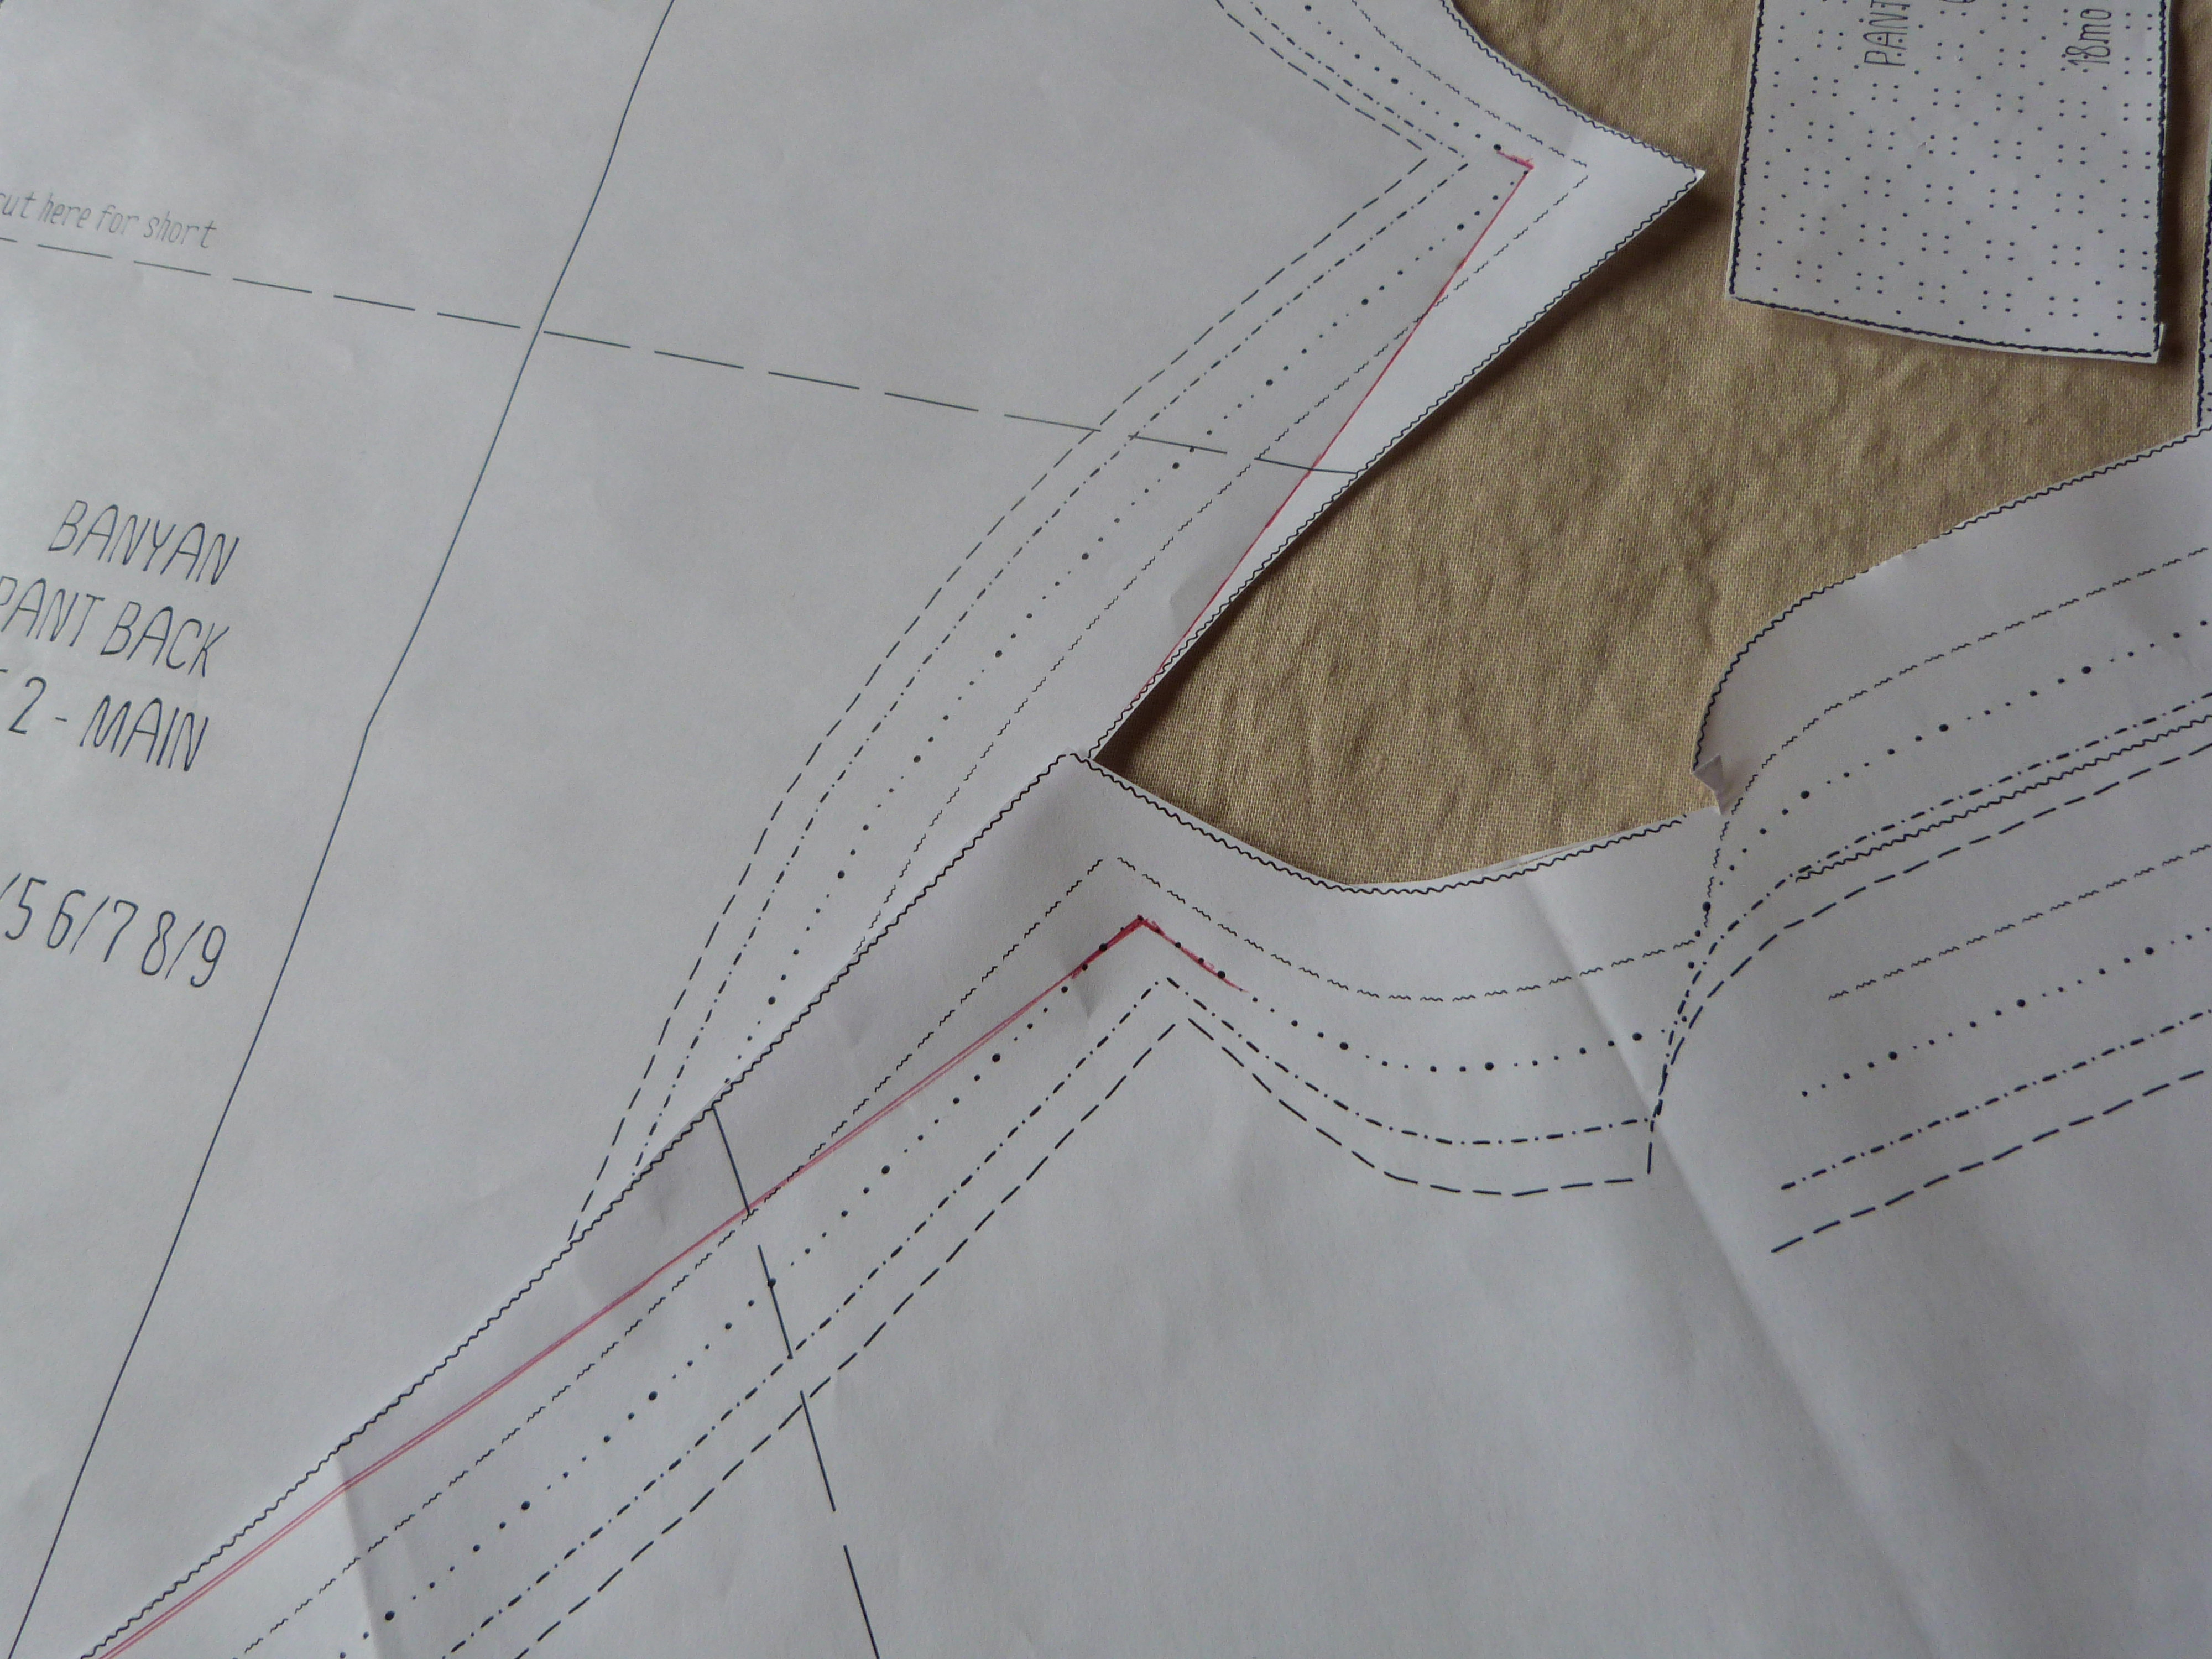 Sewing Pattern Guide Sheet Definition